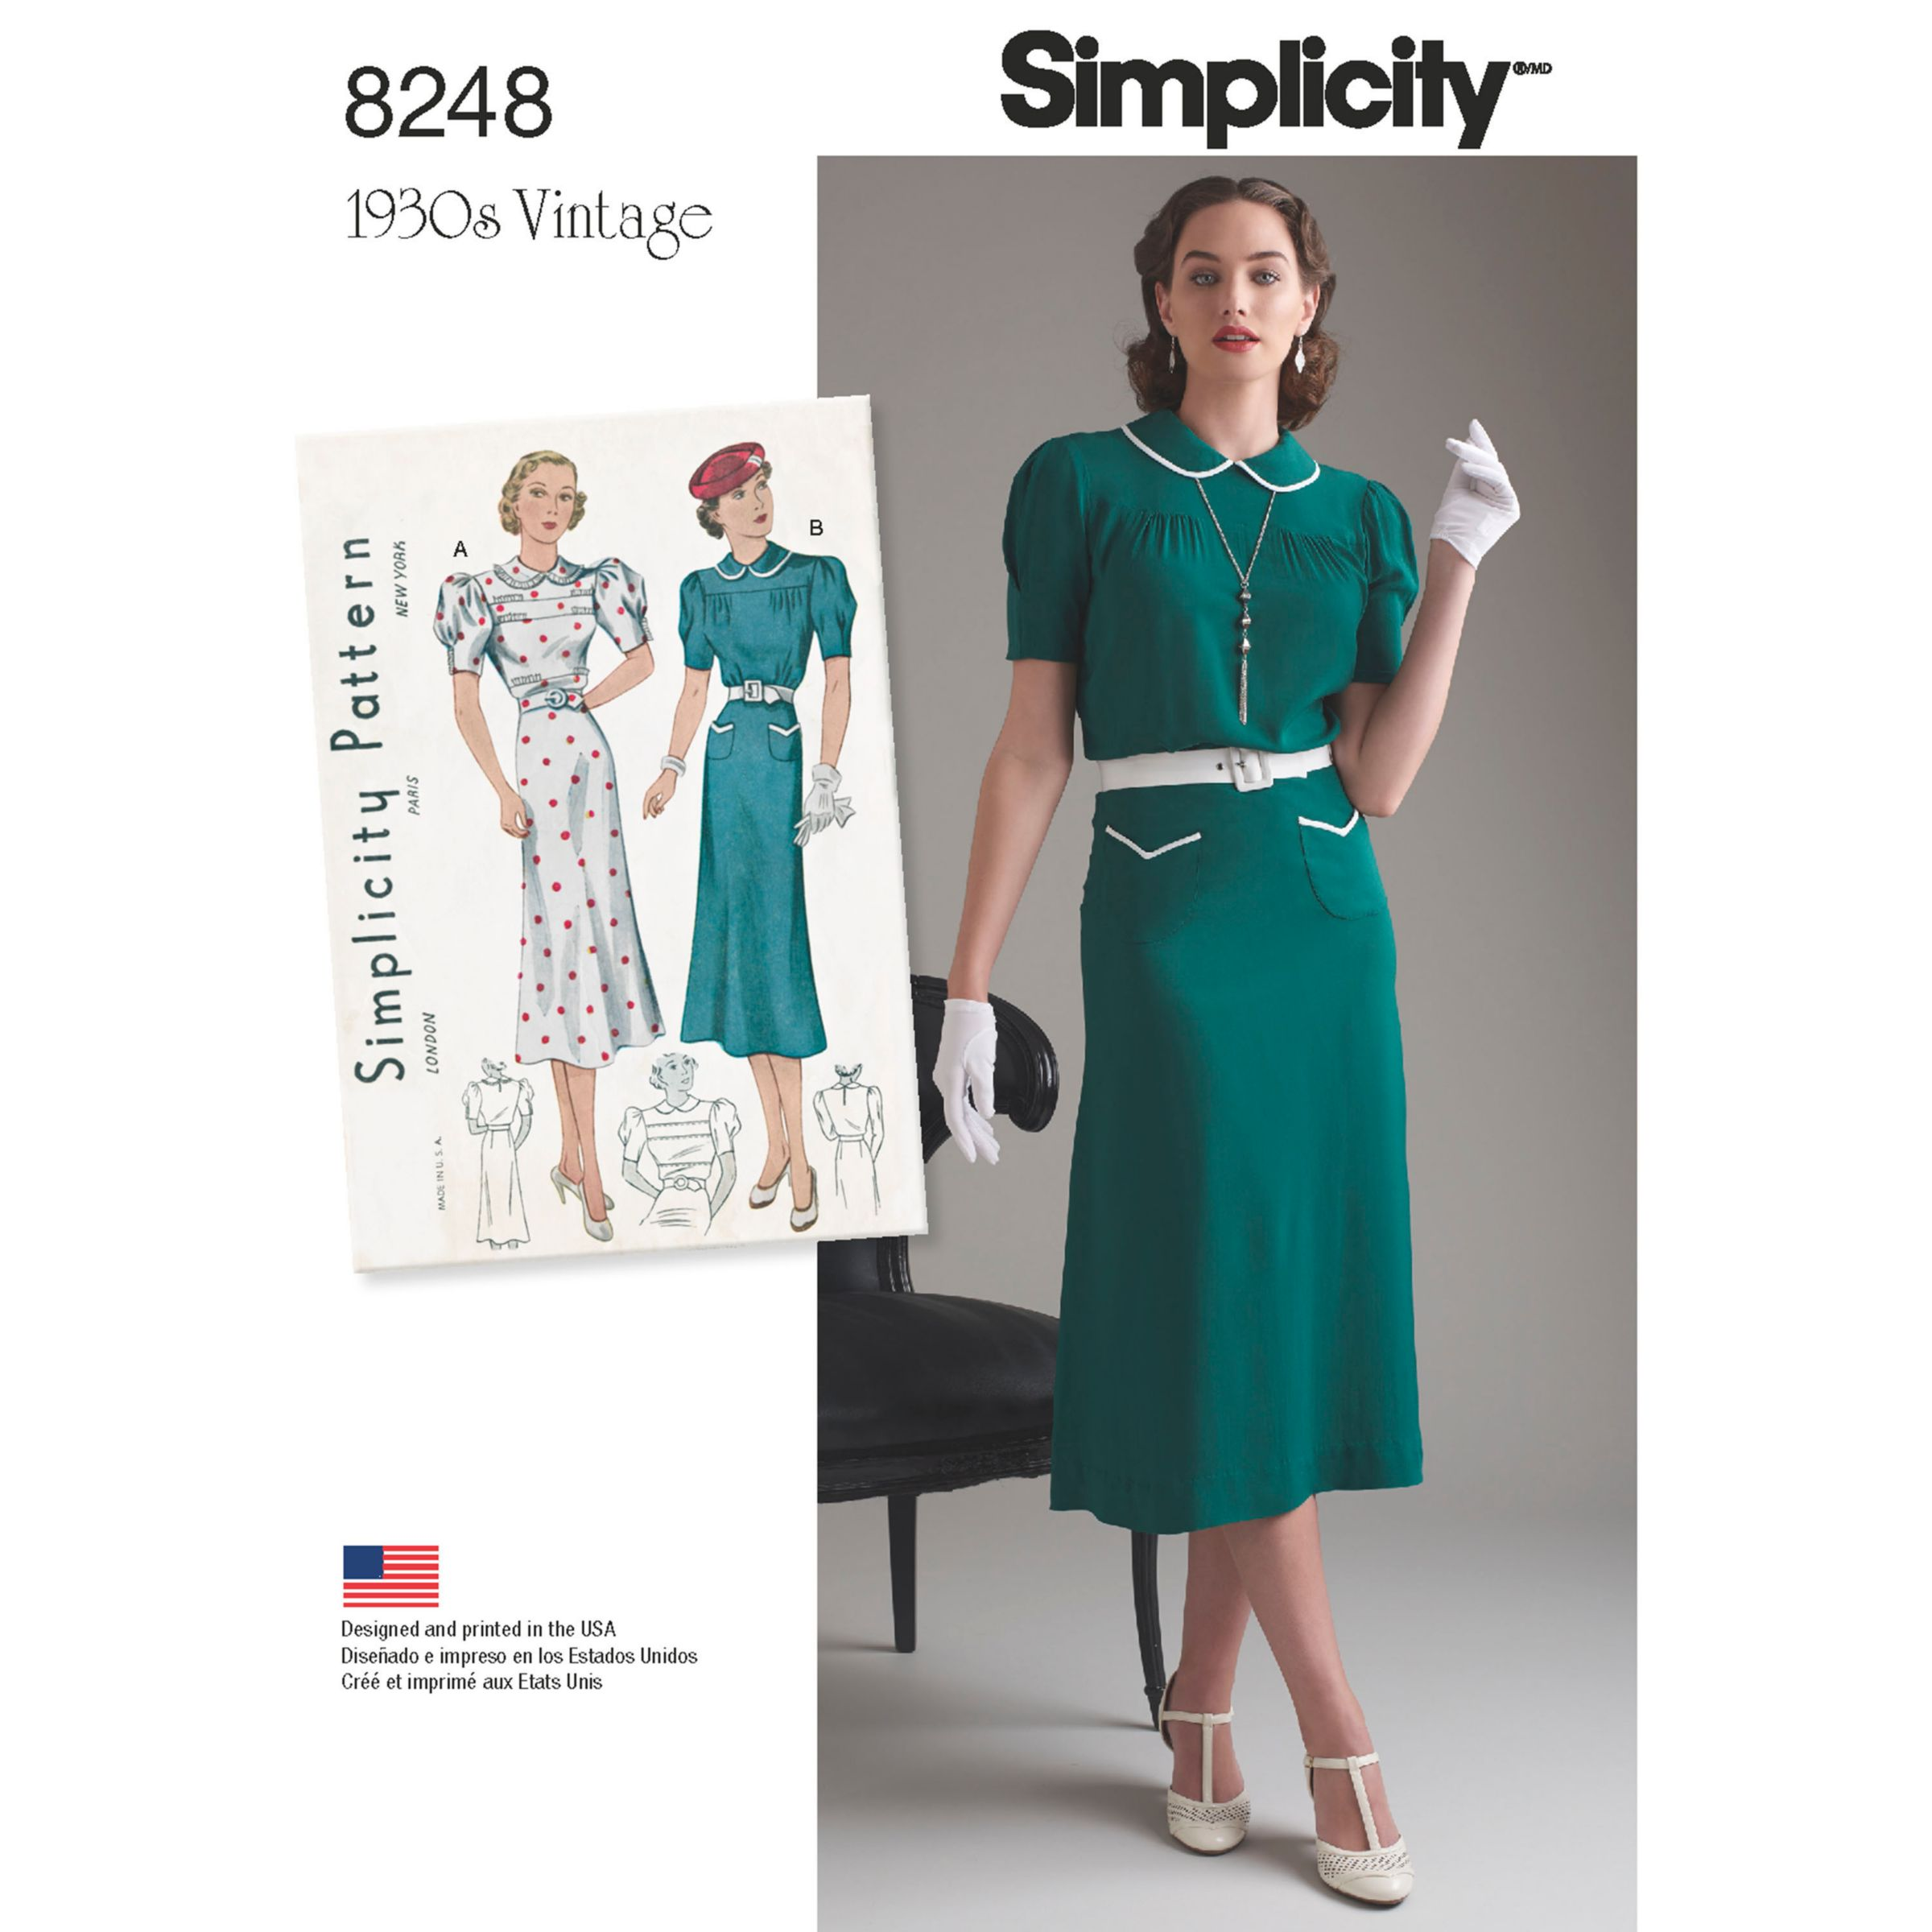 Simplicity Simplicity Women's 1930s Dresses Sewing Pattern, 8248